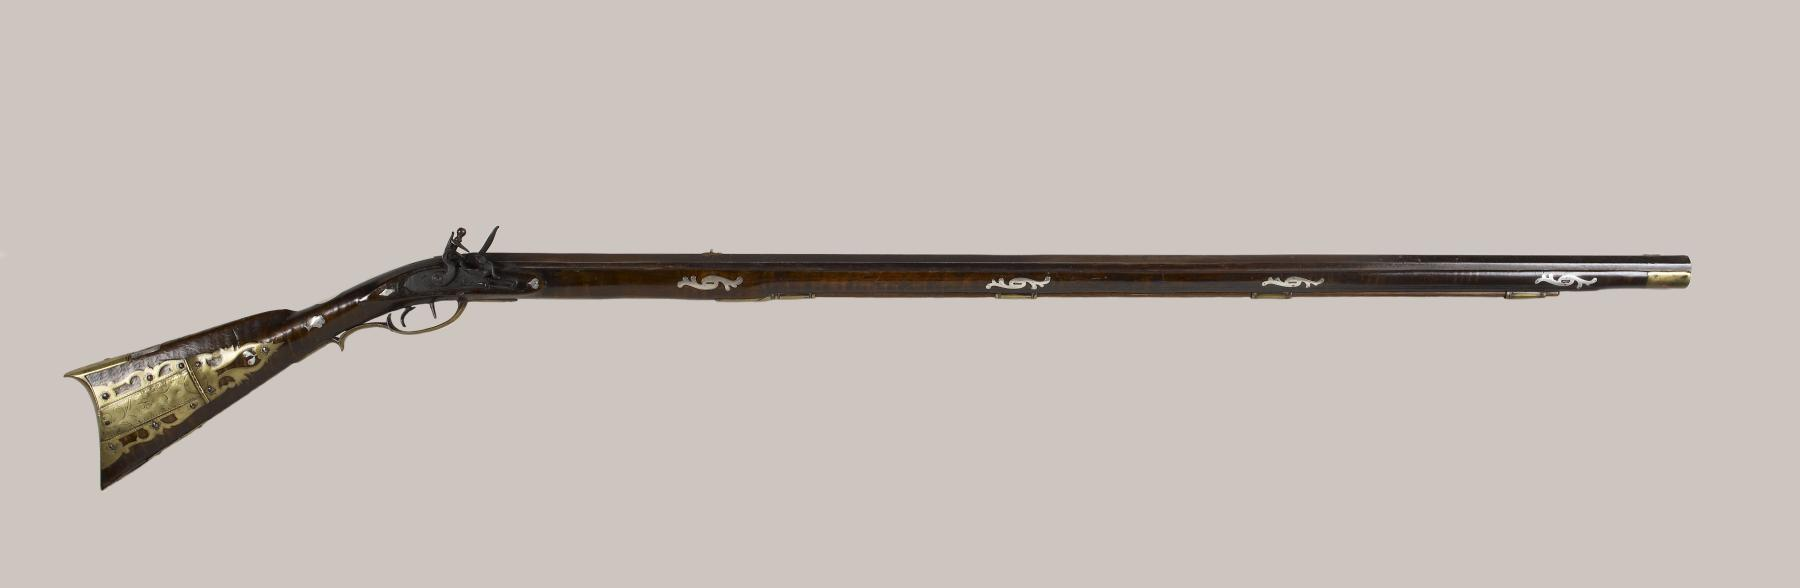 how to clean a kentucky long rifle